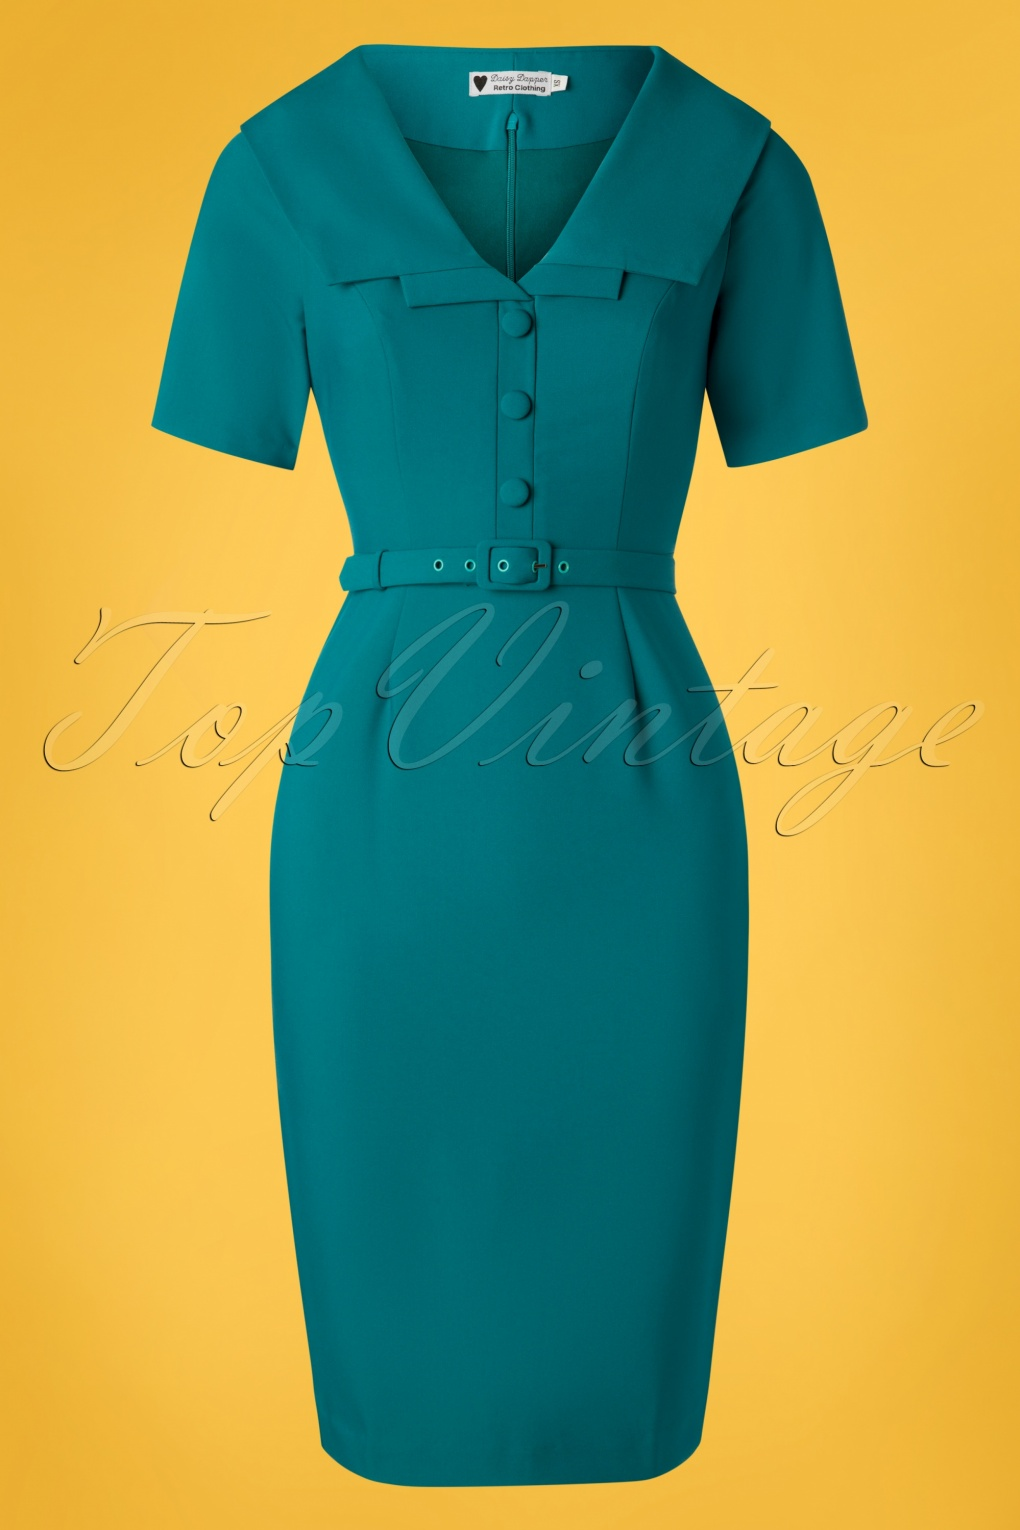 Dress Like the Marvelous Mrs. Maisel 50s Ariel Pencil Dress in Teal Blue �130.02 AT vintagedancer.com